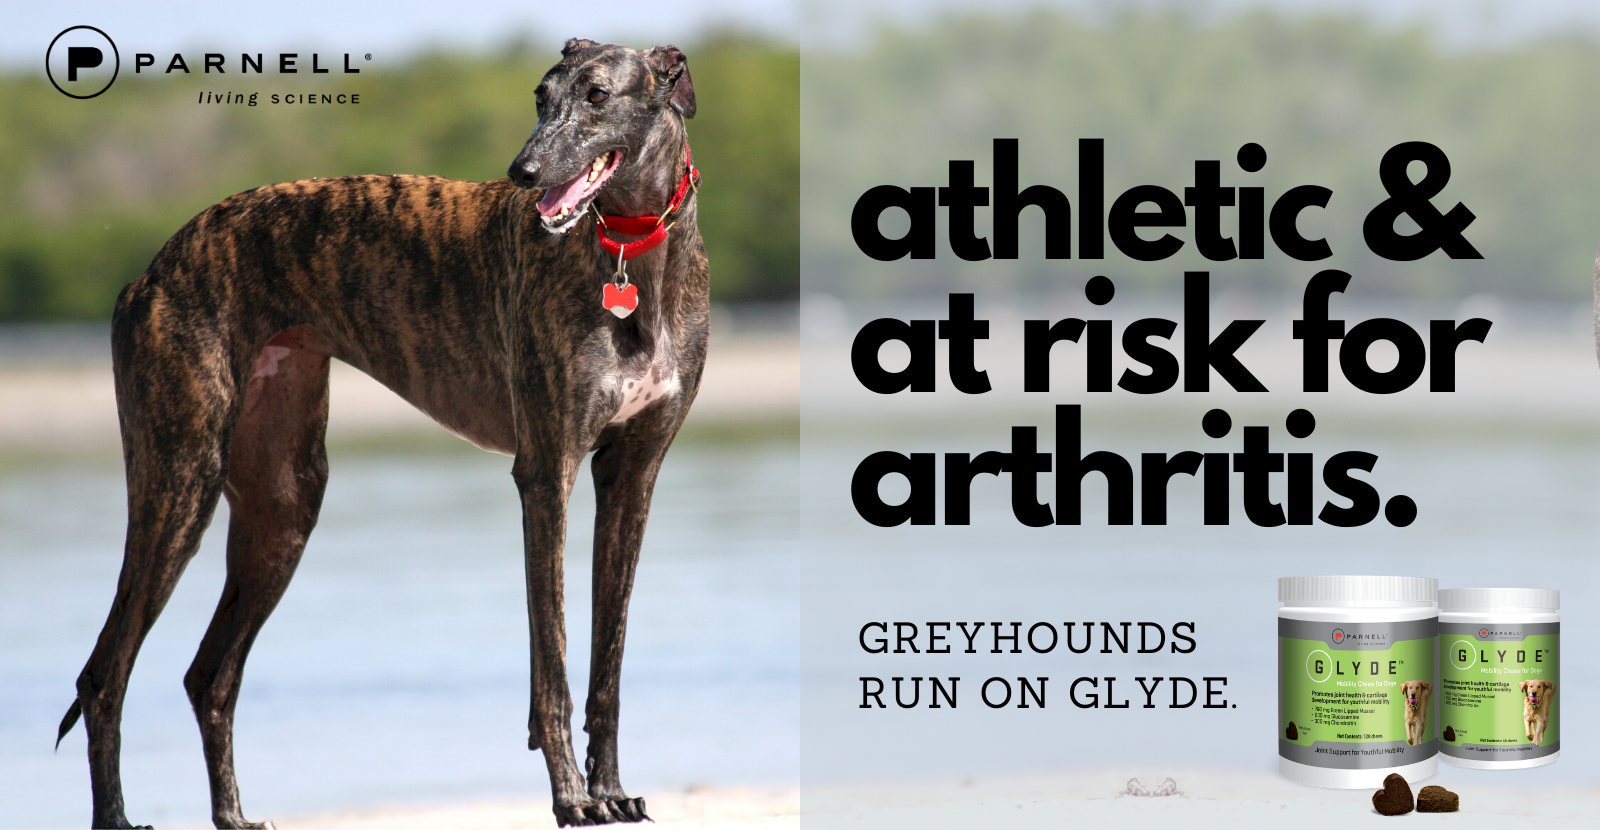 Greyhounds Run on Glyde